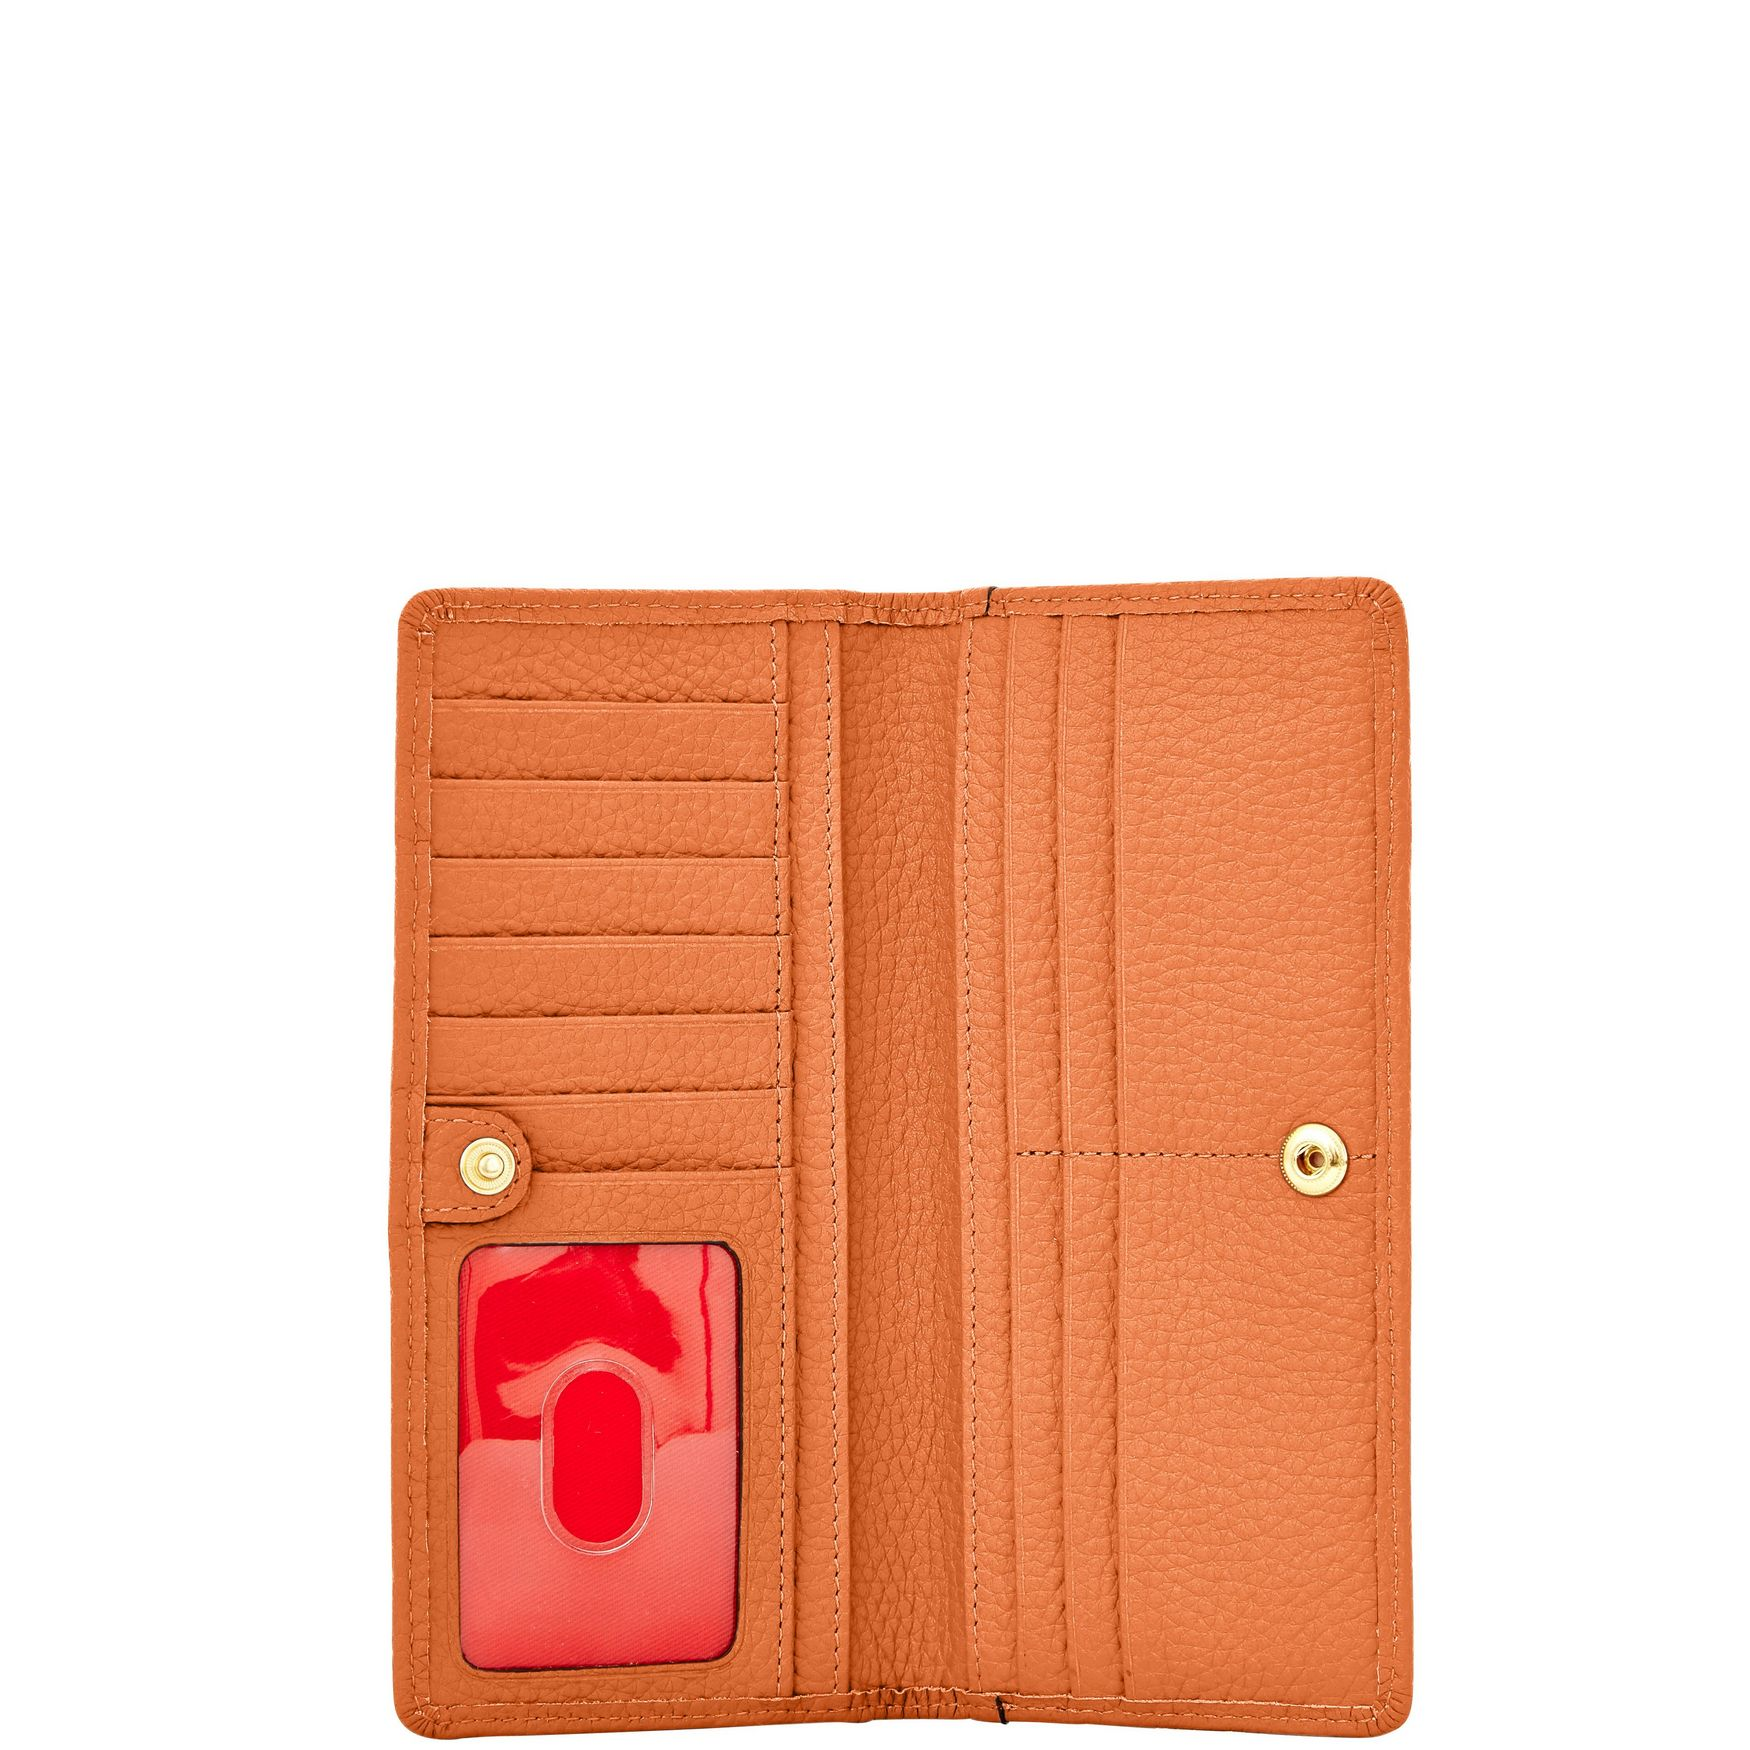 Dooney-amp-Bourke-Pebble-Grain-Slim-Wallet thumbnail 8